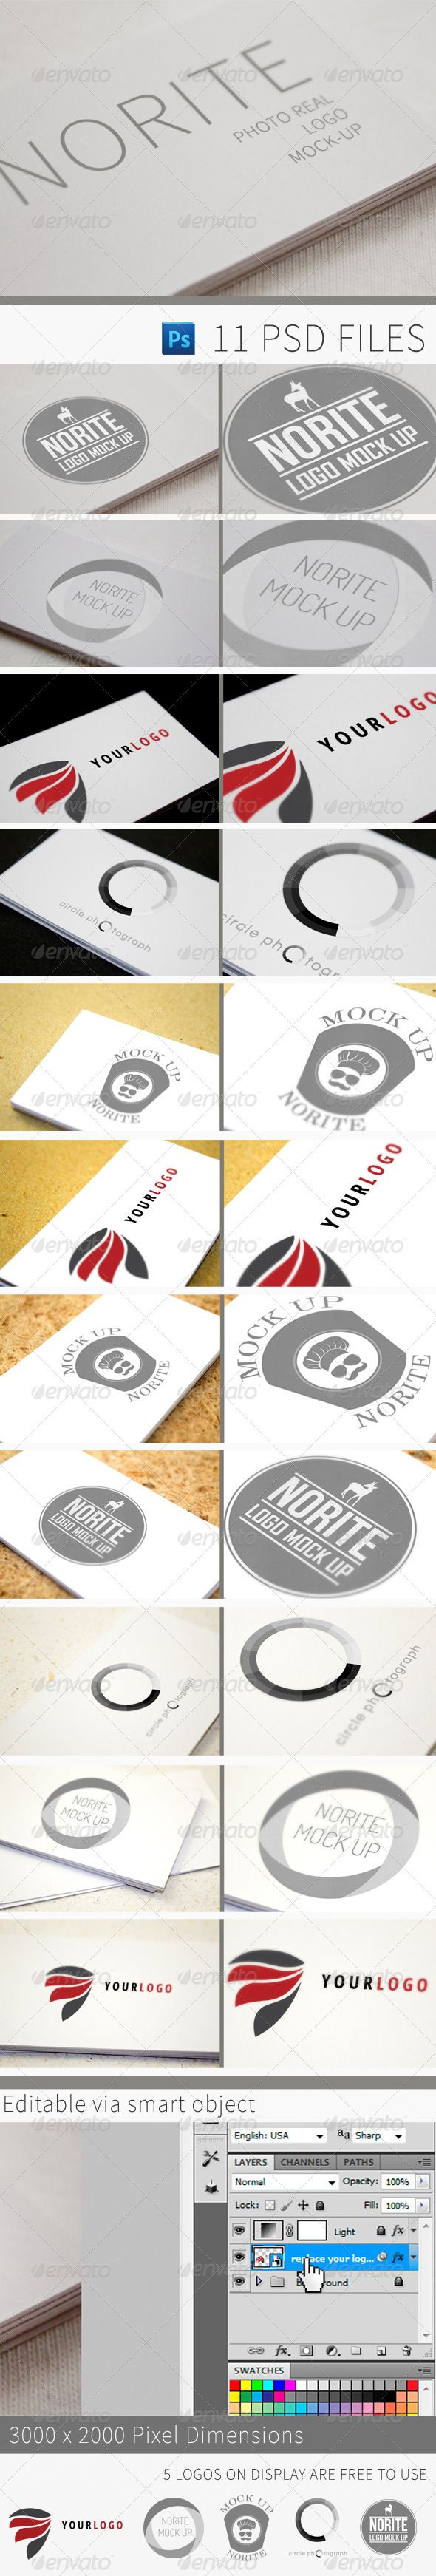 38 best brand identity and stationary mockups images on pinterest norite photo real logo mock up this is my second mock up after making norite business card templates i made this magicingreecefo Gallery